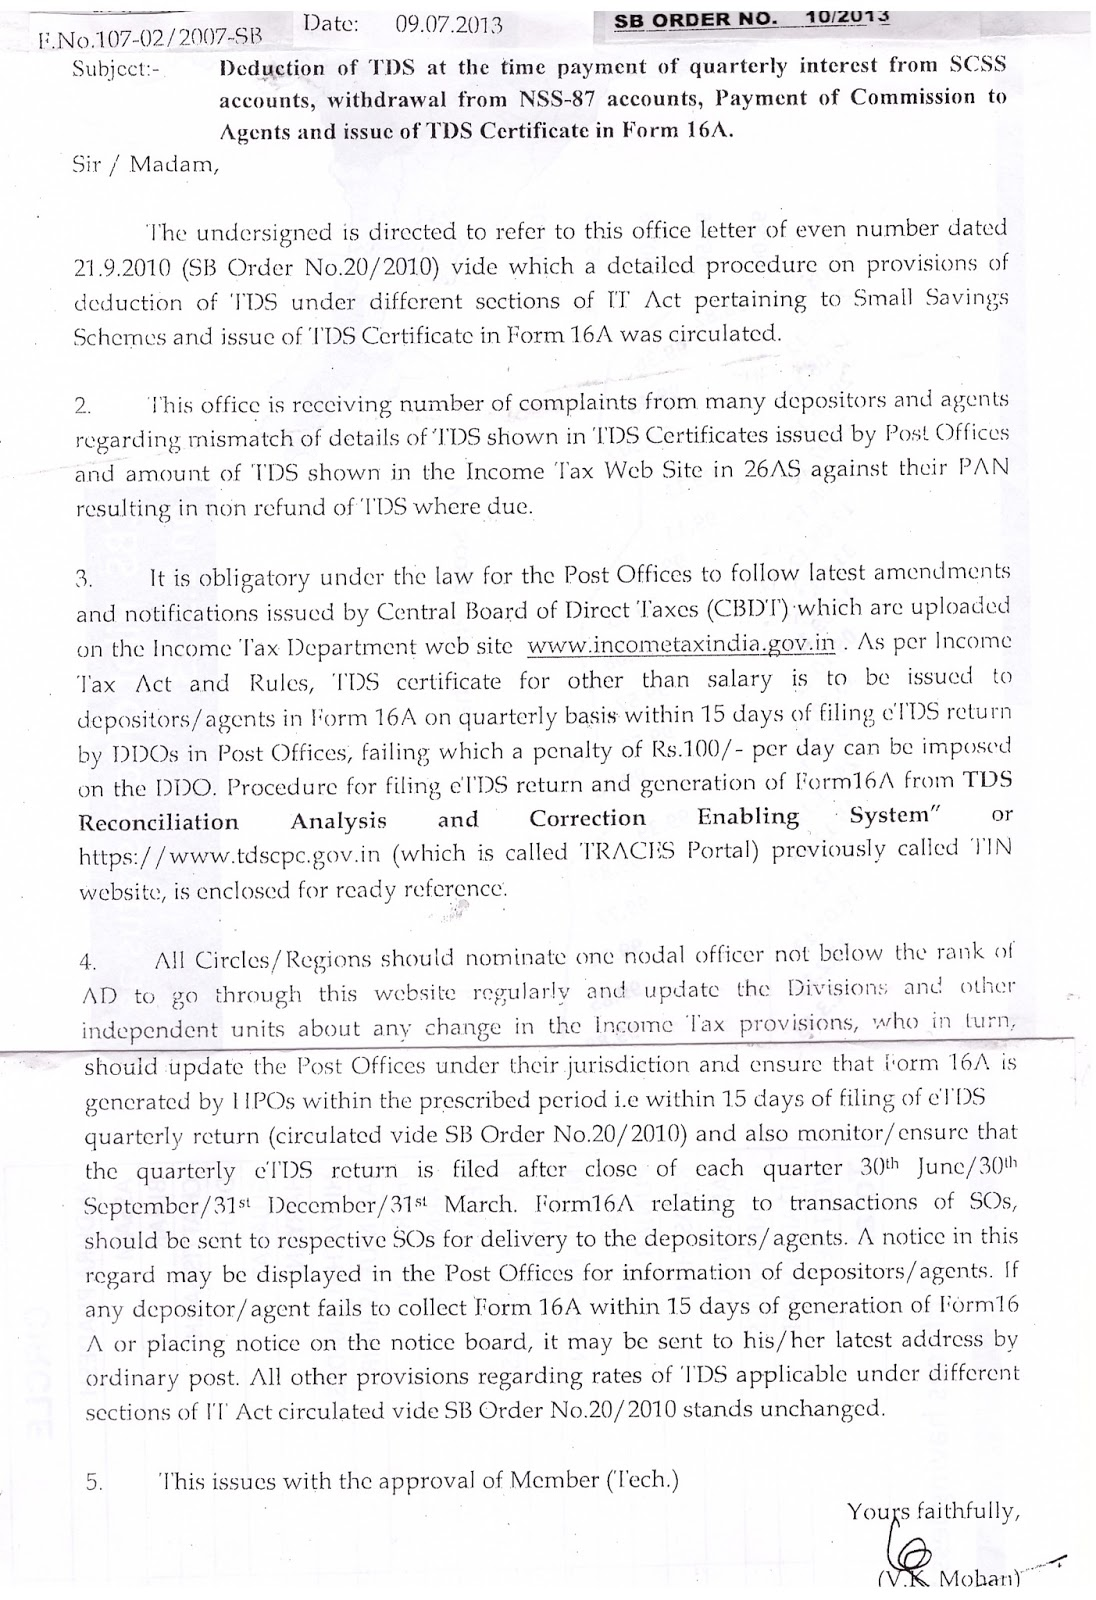 IP(A)SP ANDHRA: Deduction of TDS at the time of payment of